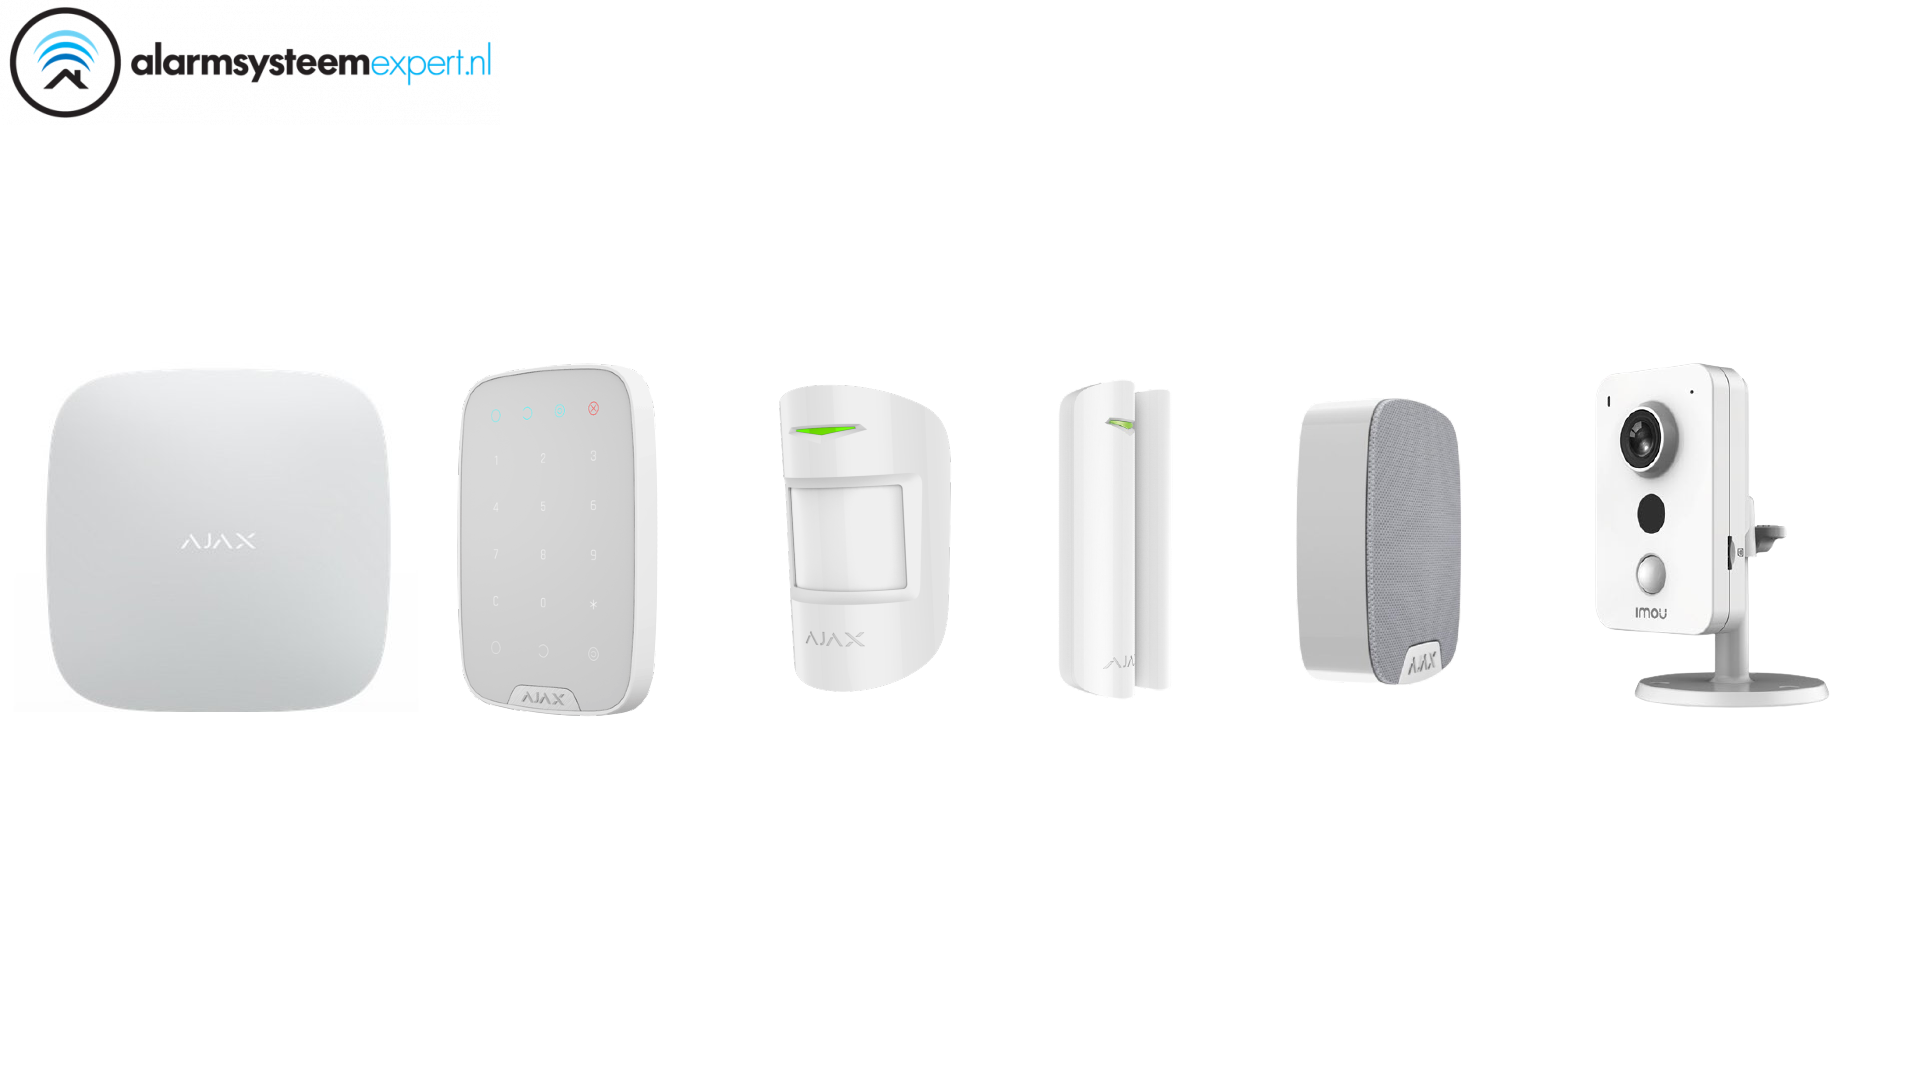 Alarm System Kit 1C Wireless with Wifi Cube Camera for indoor use (White)